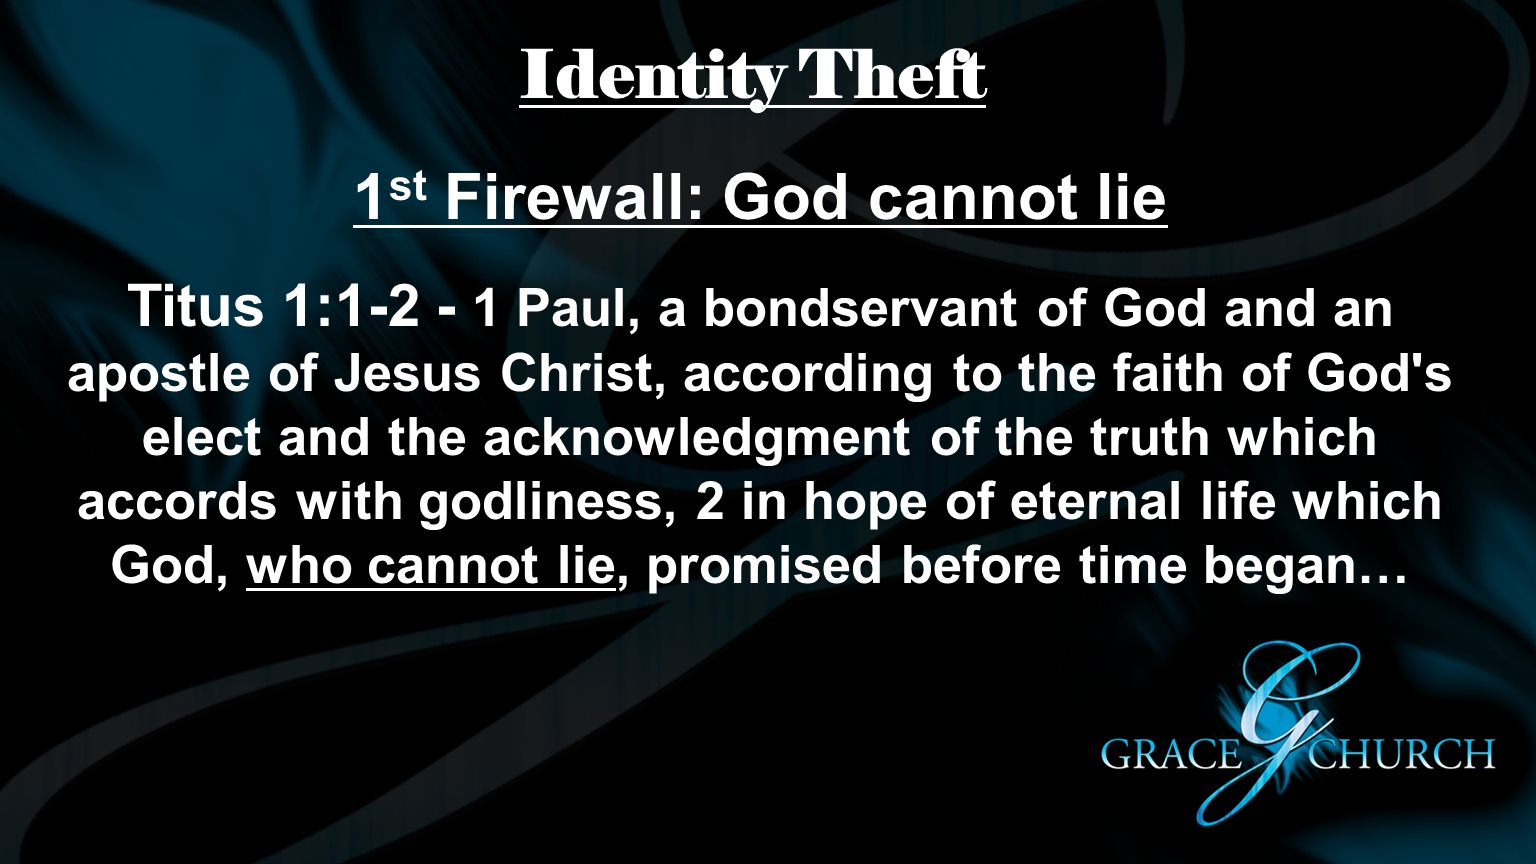 1st Firewall: God cannot lie